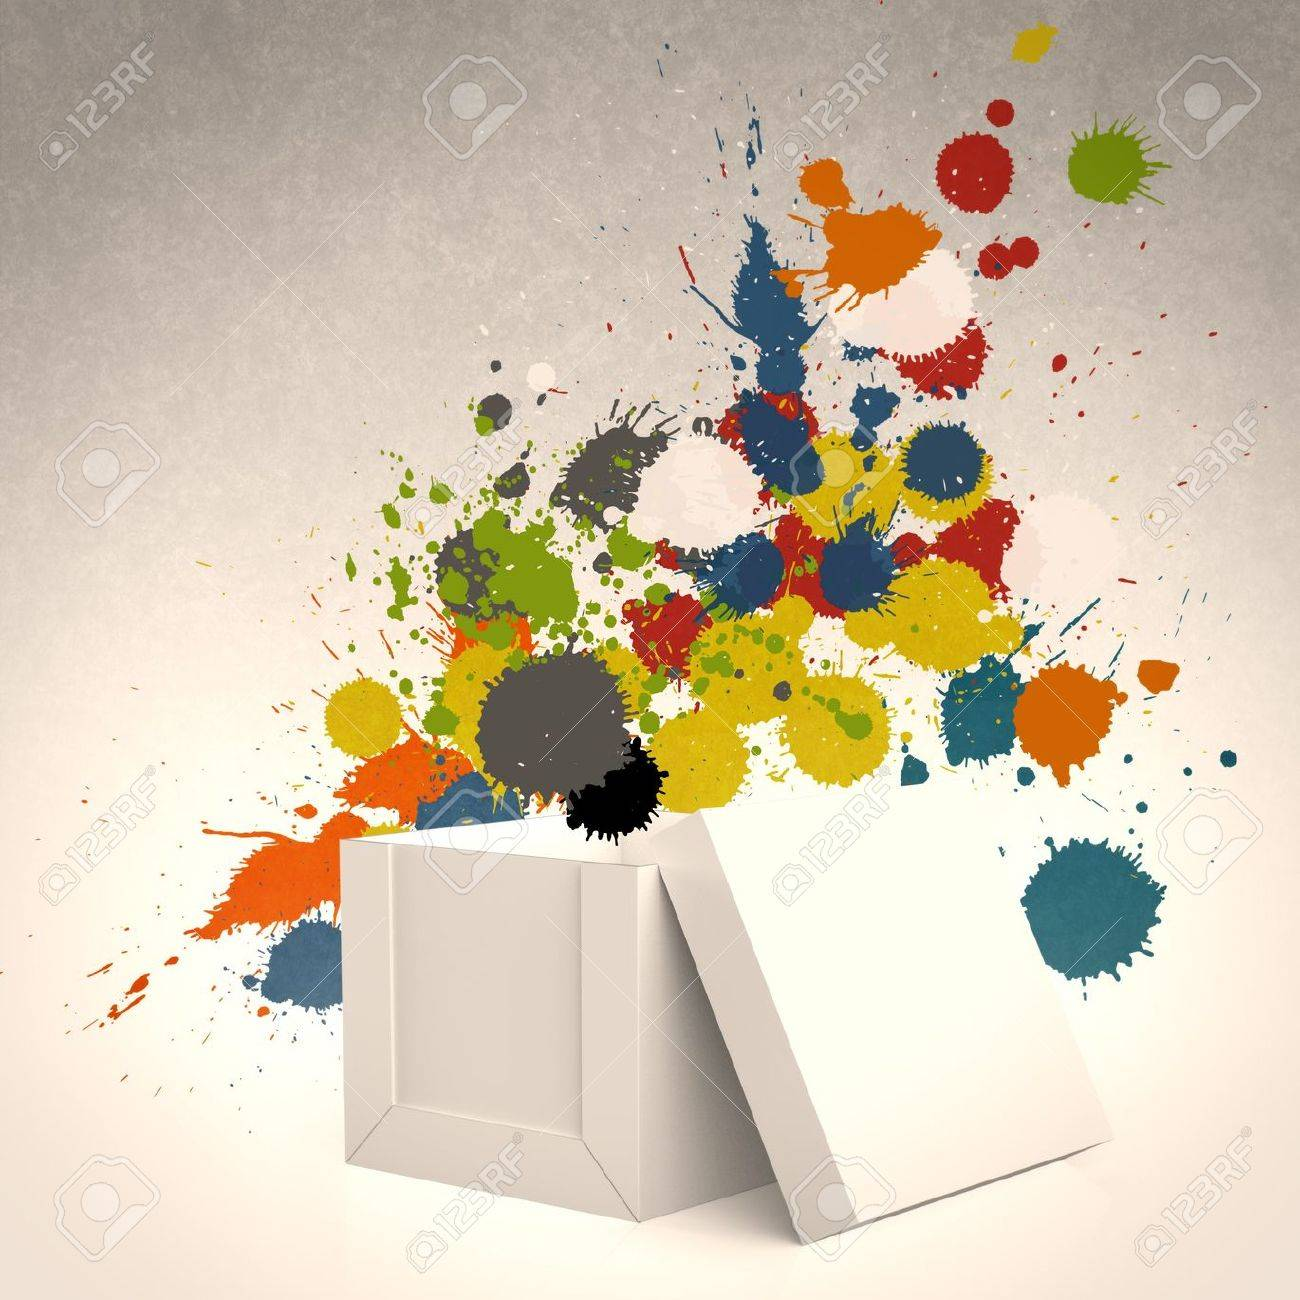 thinking outside the box and splash colors as concept Stock Photo - 22007971